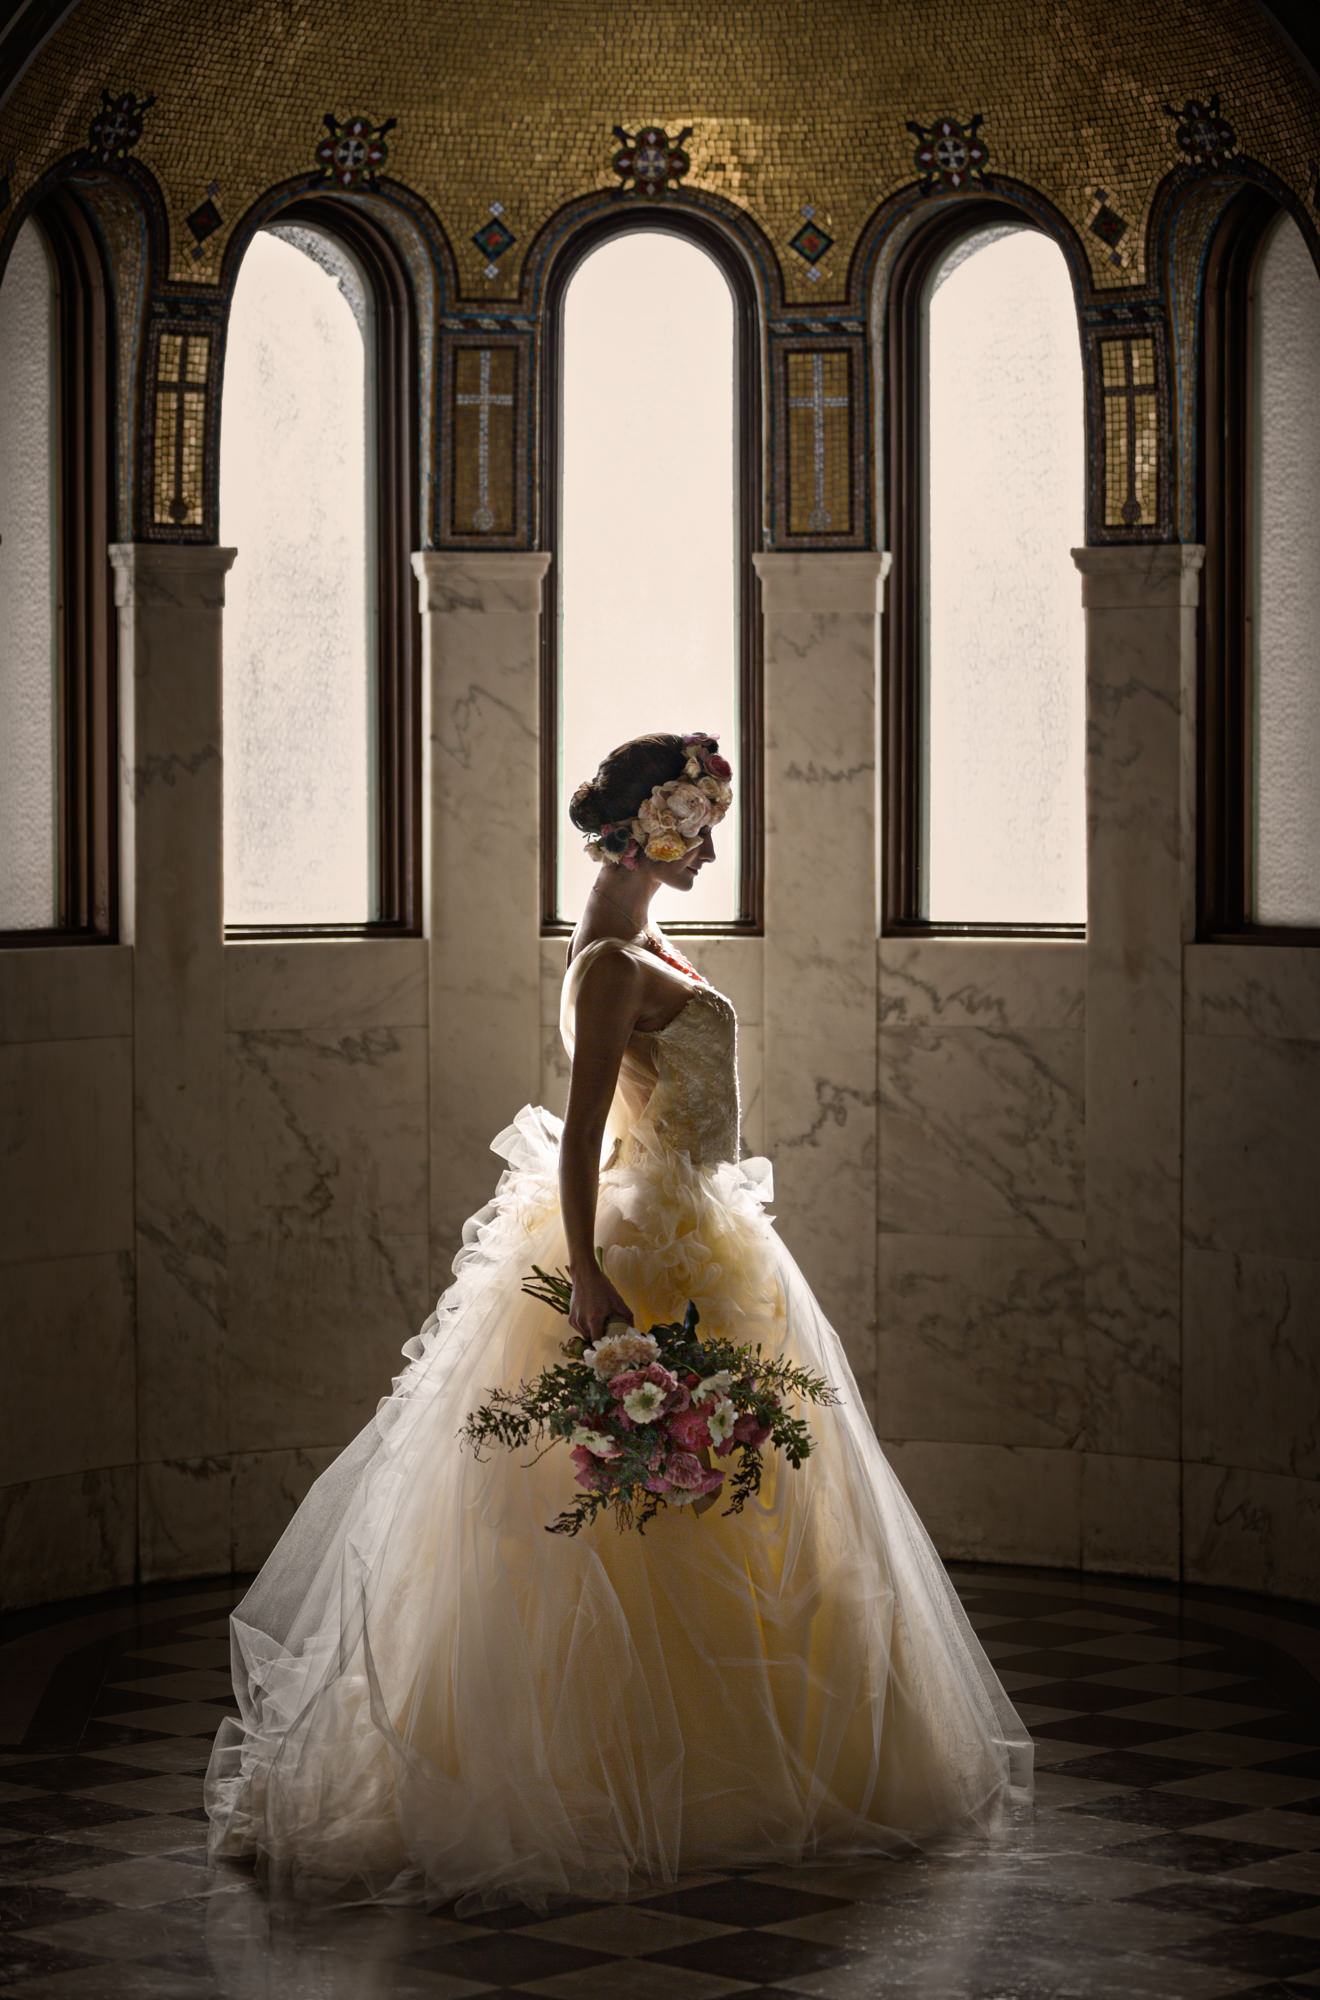 Profile of bride in Monique Lhuillier ballgown with bouquet and floral crown by Roberto Valenzuela